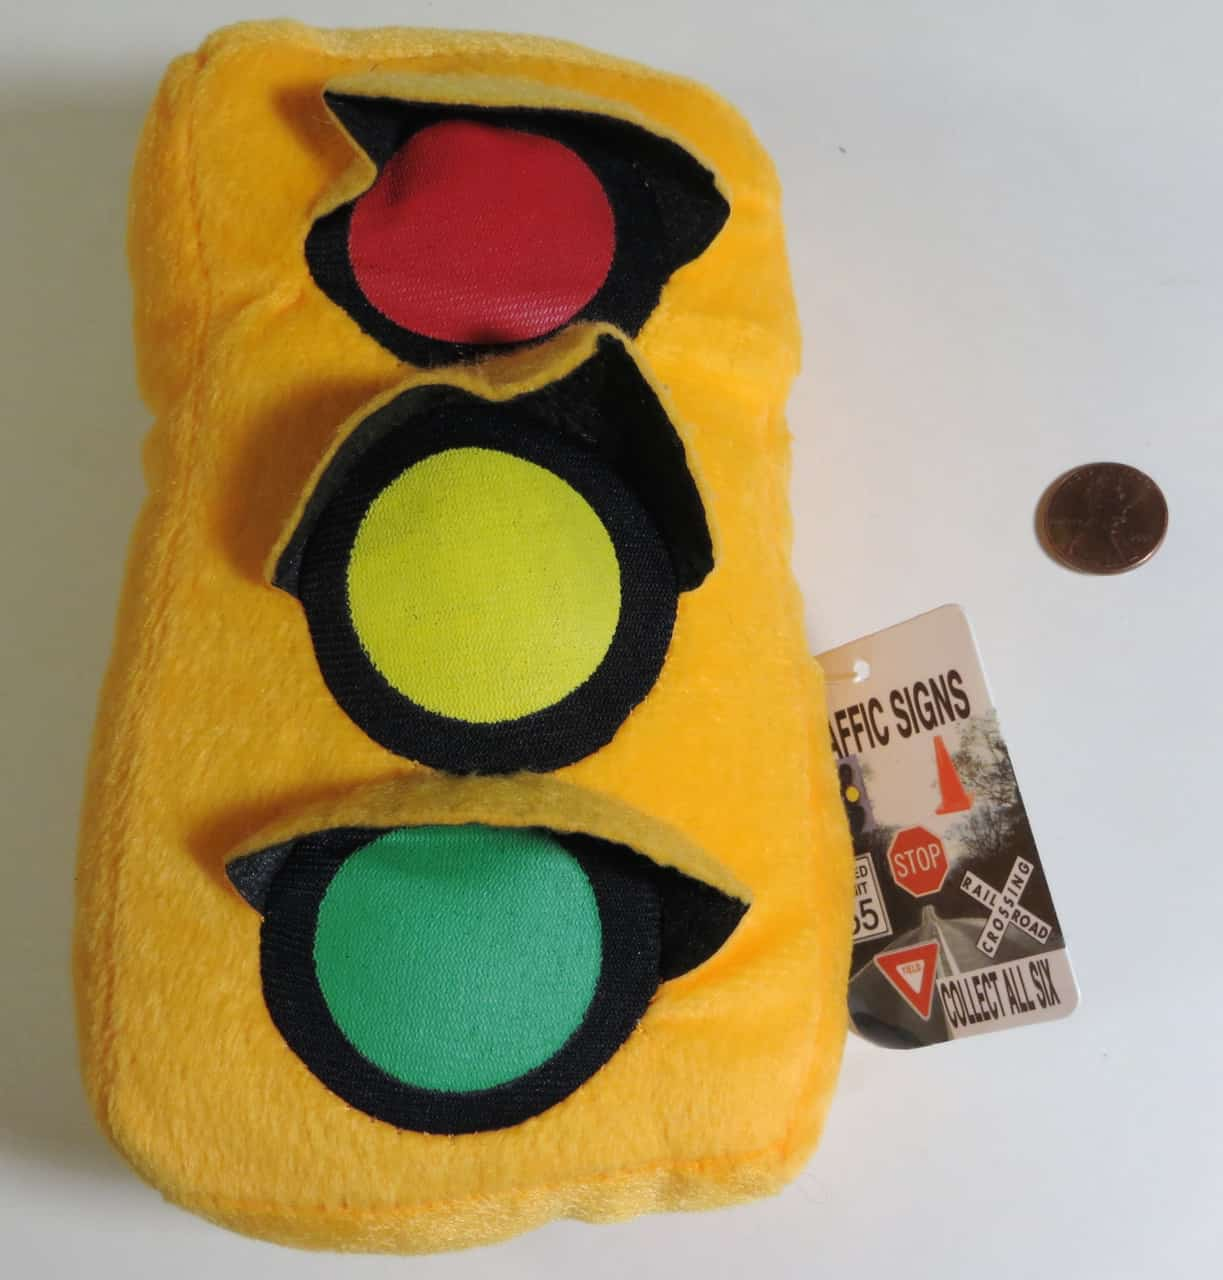 Stop Light For Garage Wall: Traffic Light Decorations For The Garage, Kitchen, Or